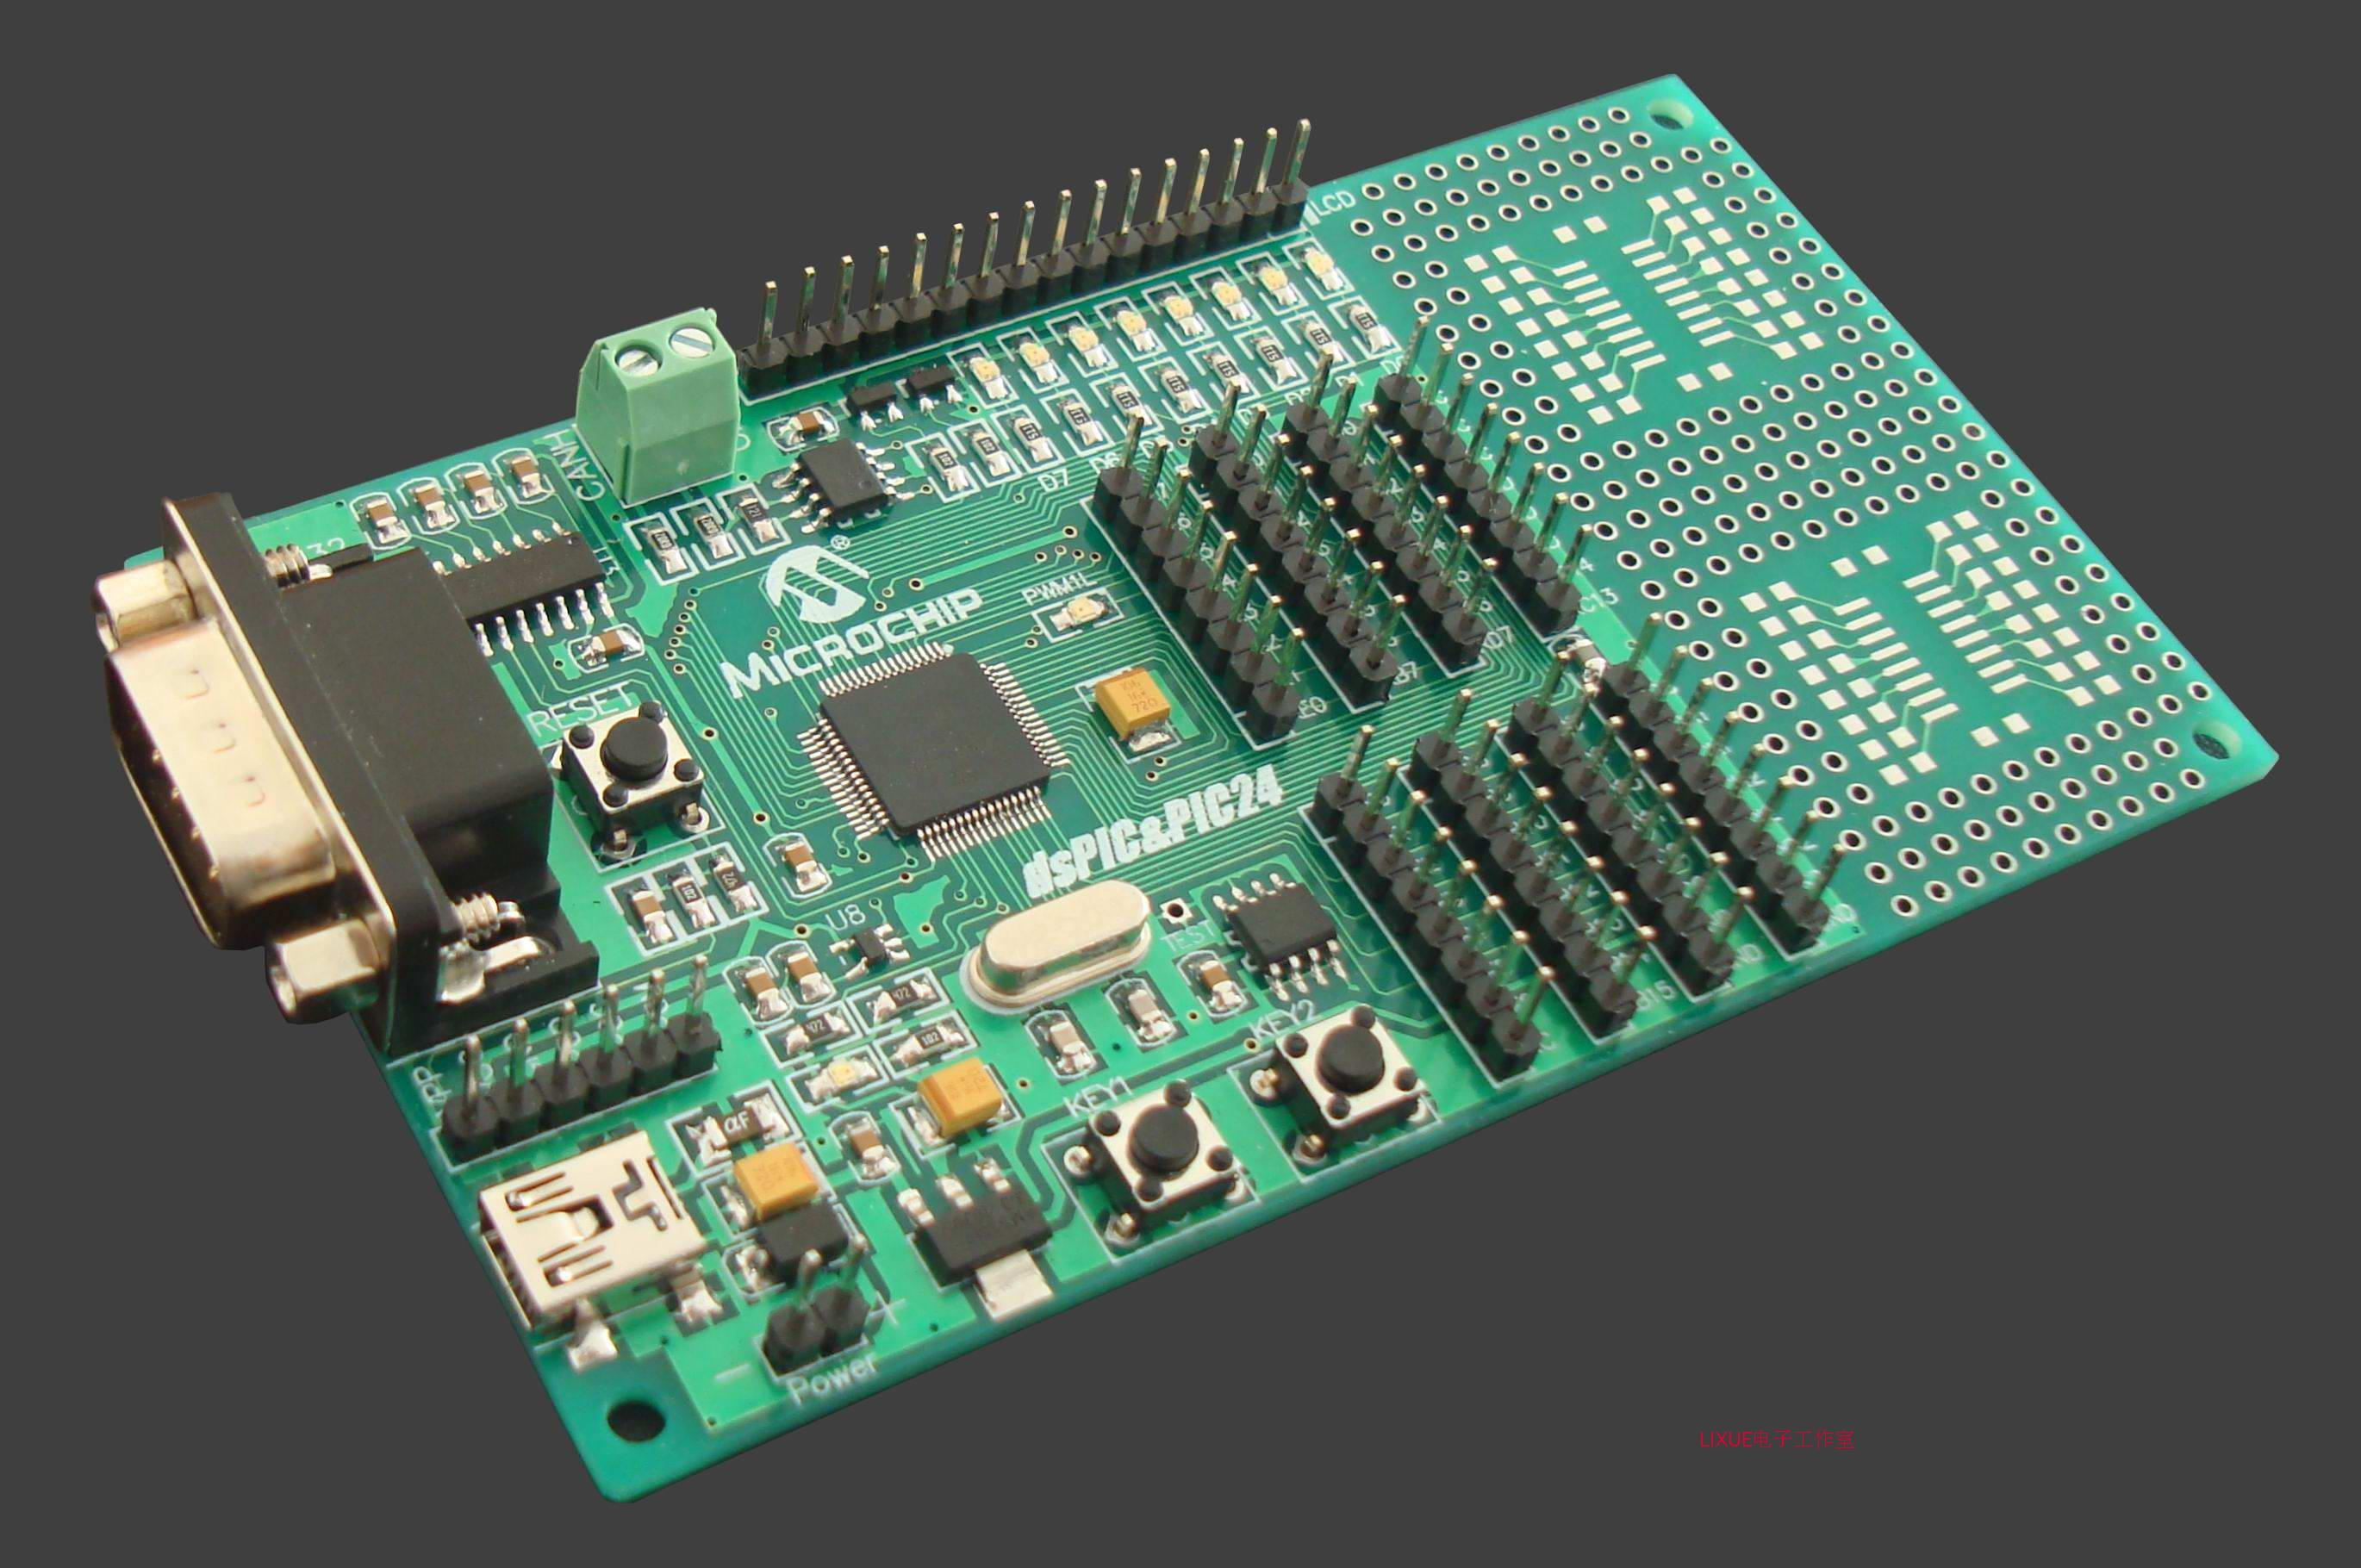 цена на DsPIC33FJ128MC706 microcontroller, CAN motor, PIC learning board, development board, experimental board